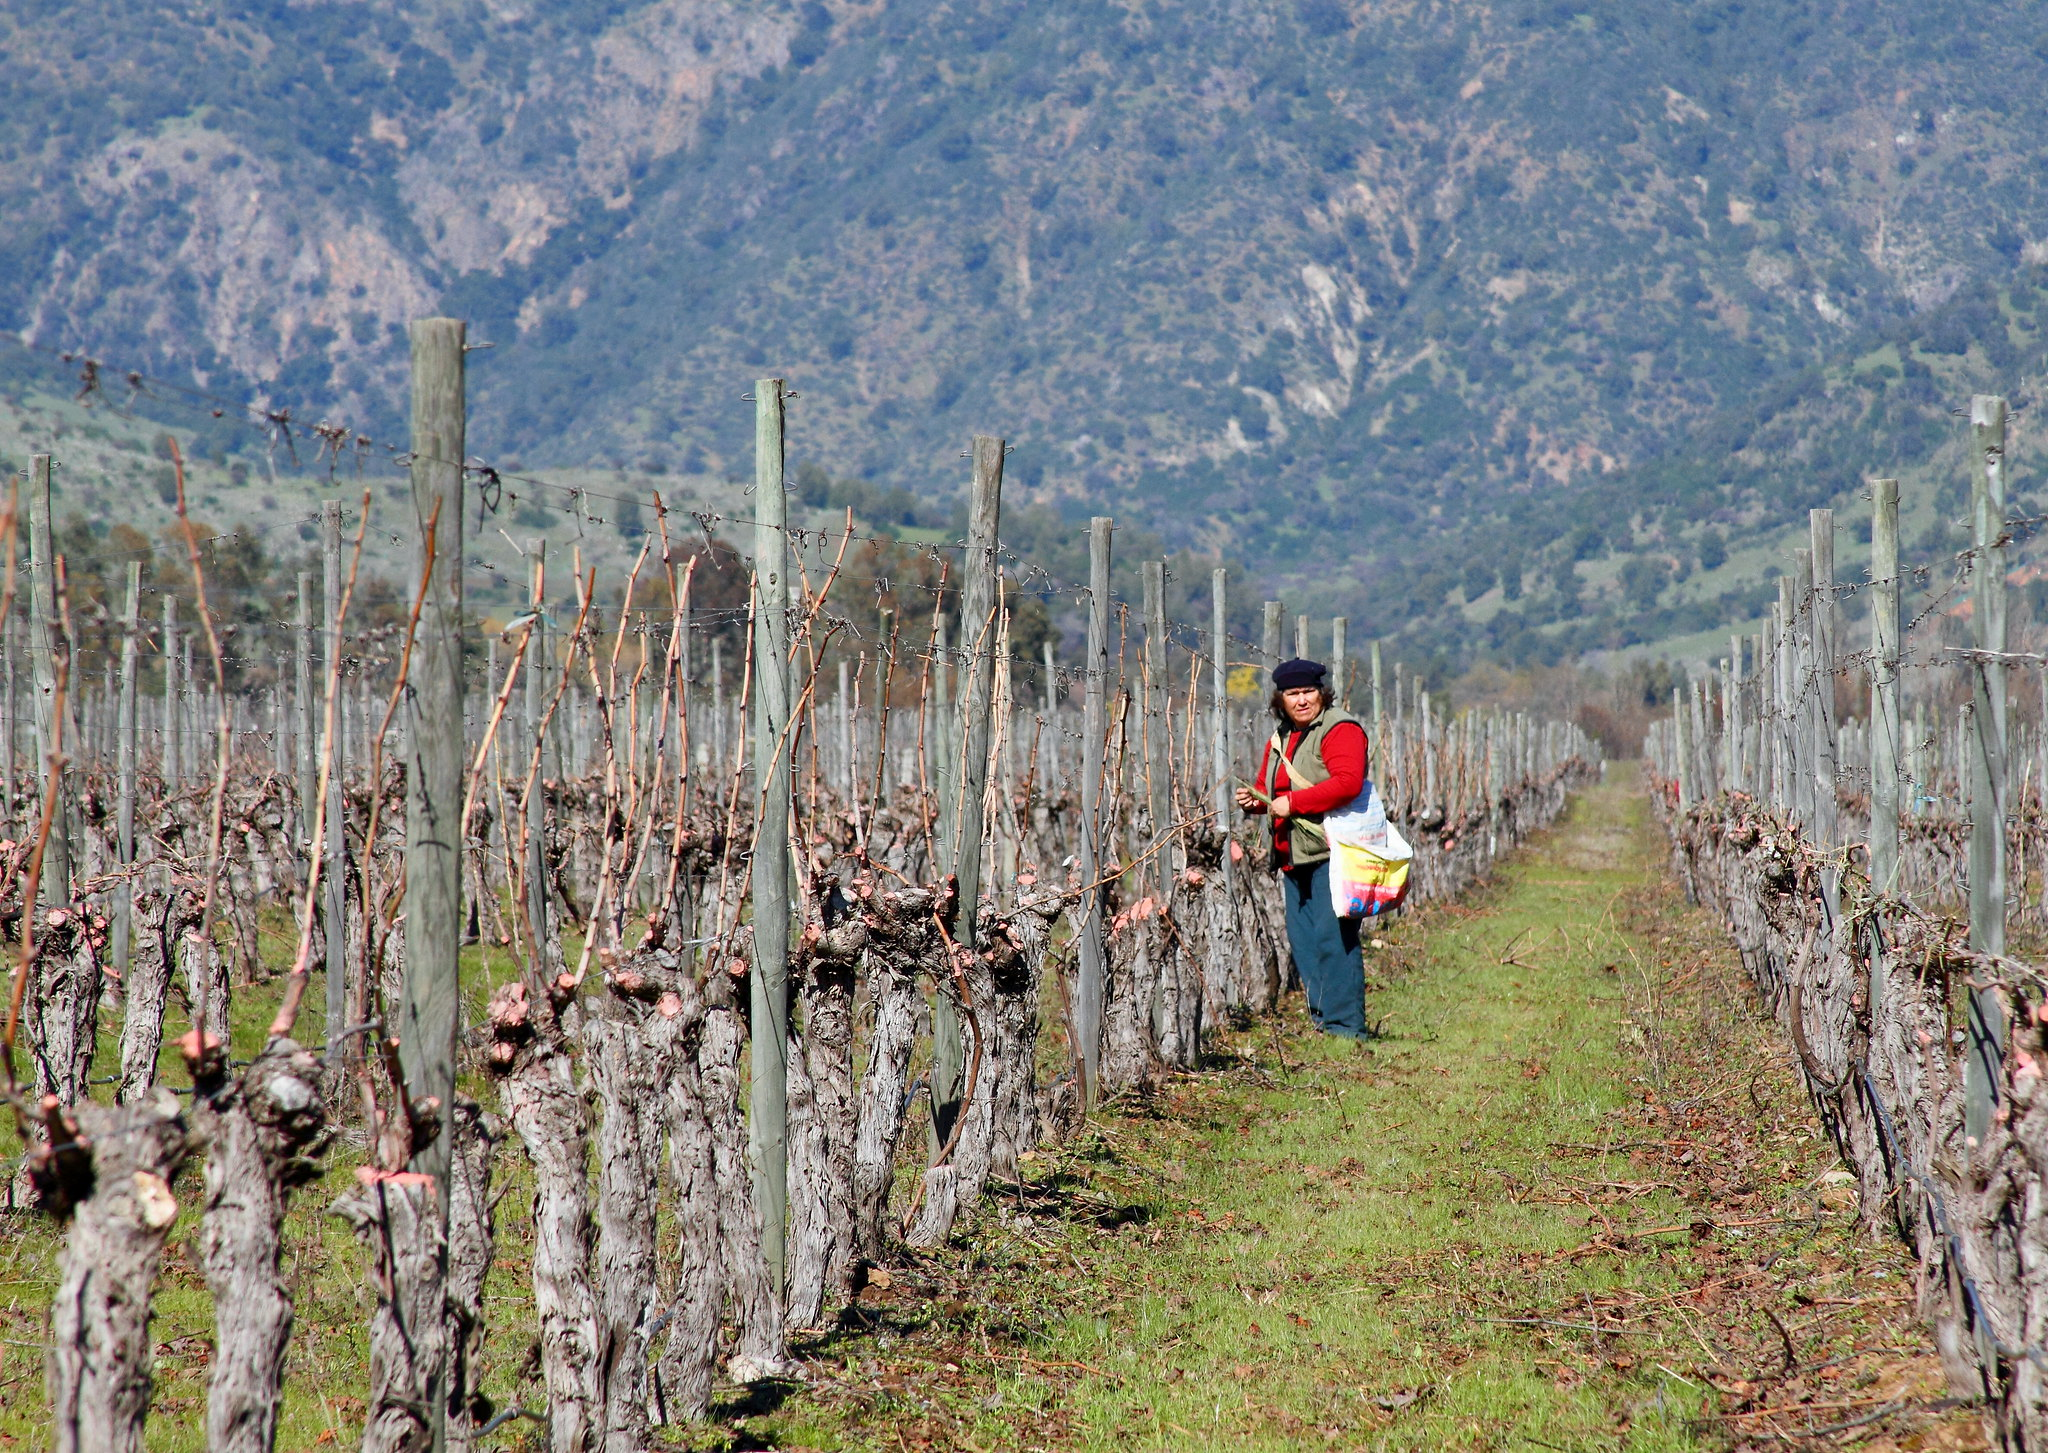 <p>Chile\'s agriculture sector depends on adapting water use to climate change. Photo by Daniel Garcia Neto/Flickr.</p>